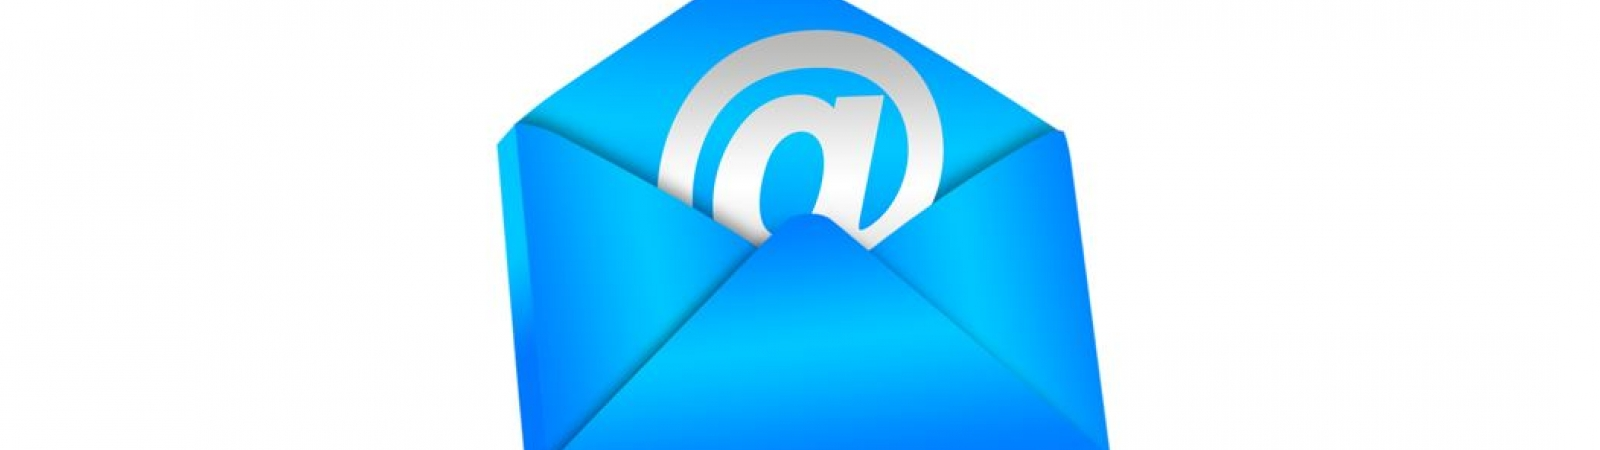 A blue envelope containing the @ sign.